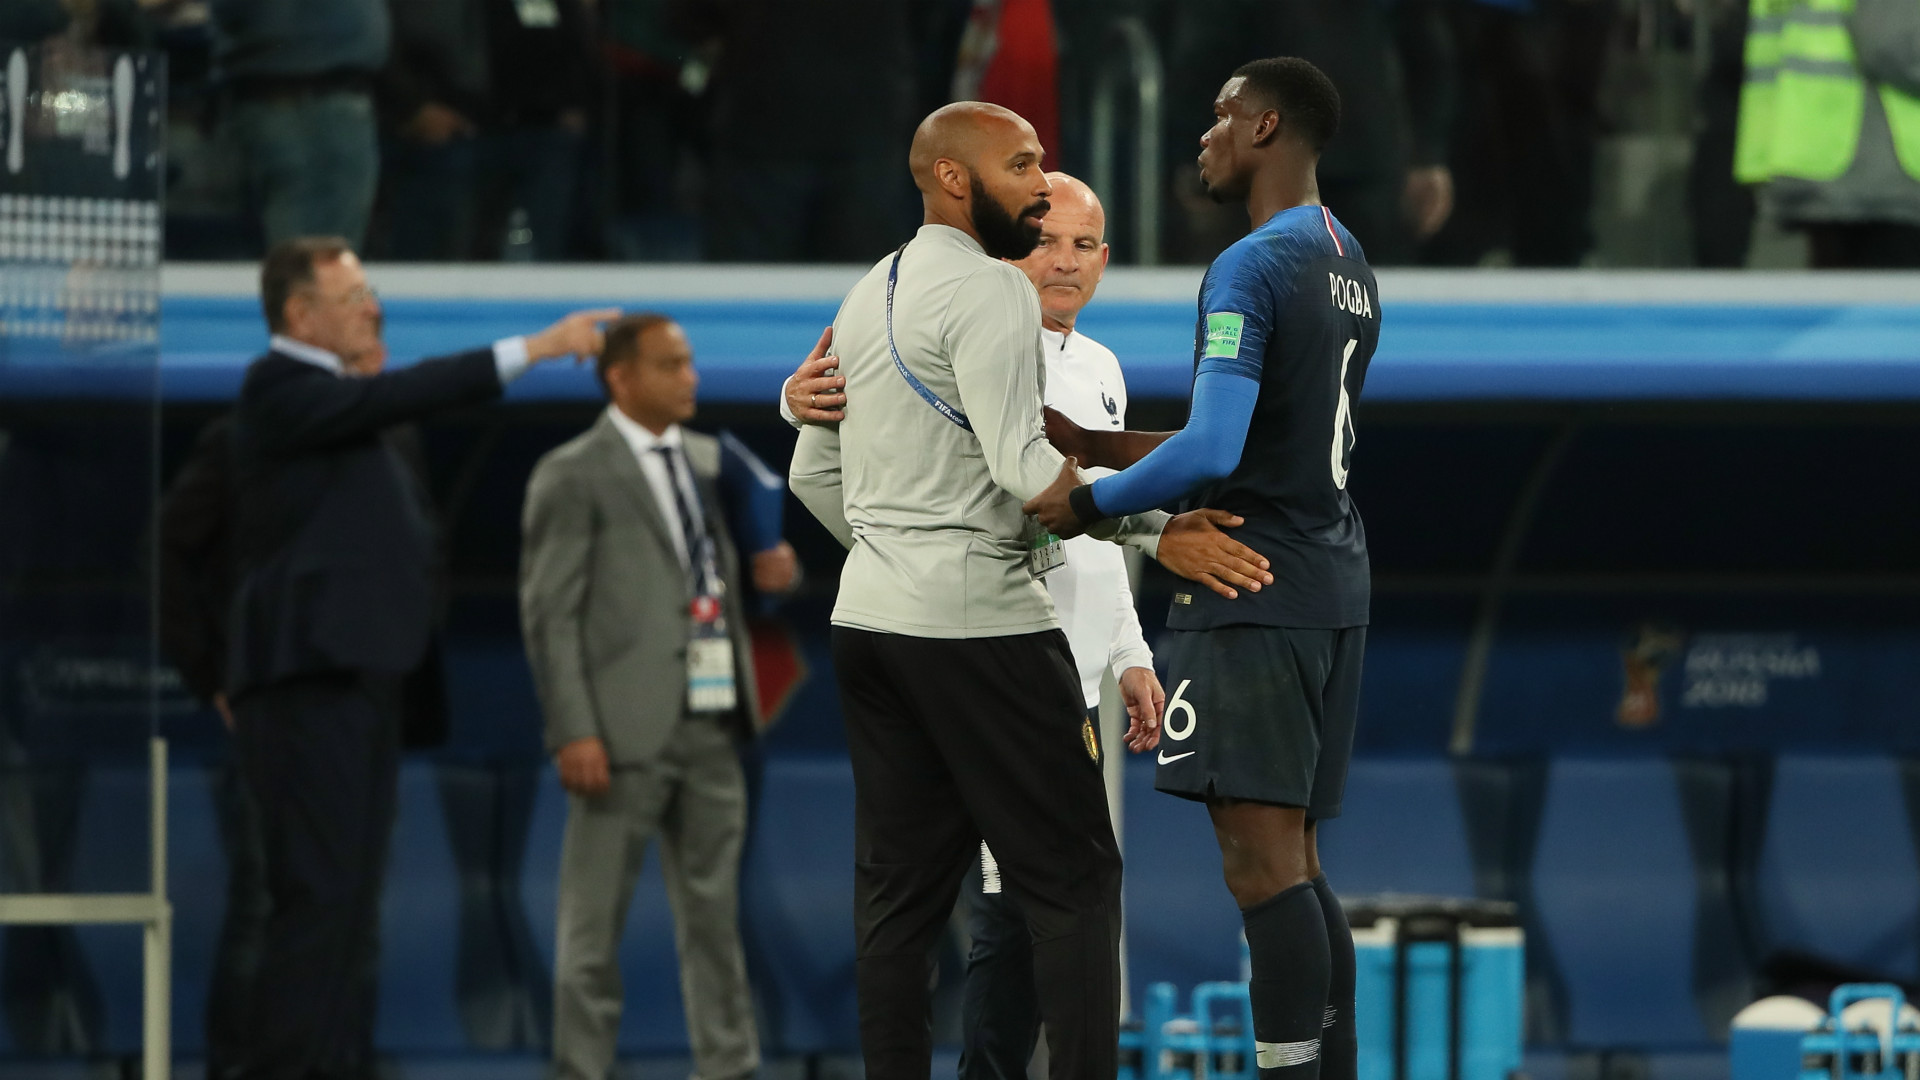 France Belgium World Cup 2018 Thierry Henry Pogba